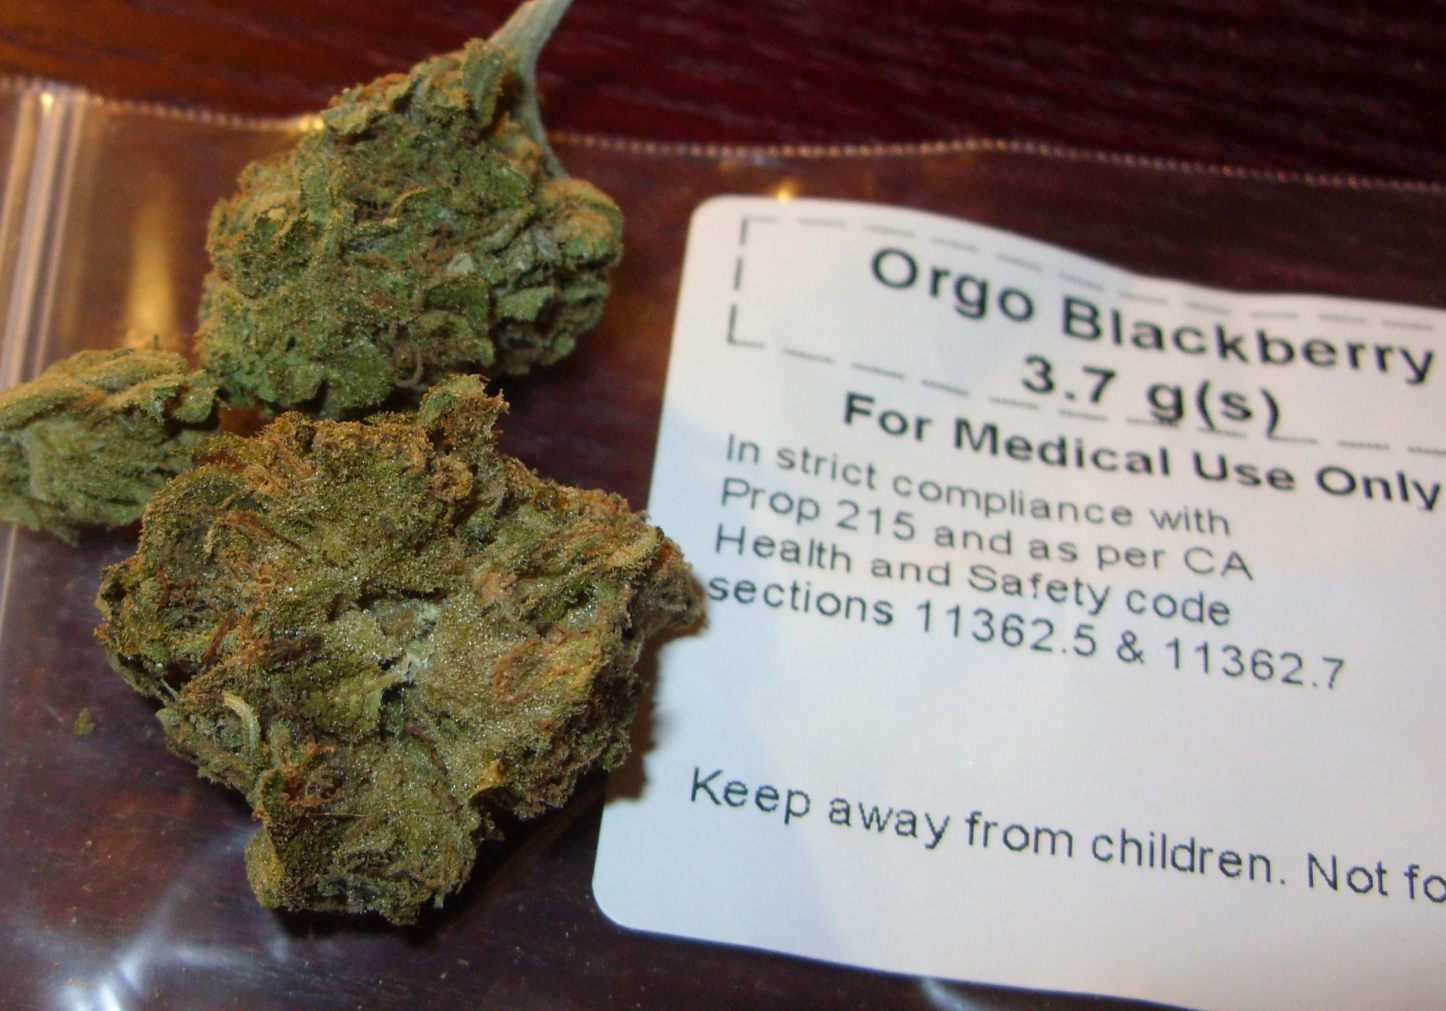 orgo-blackberry-weed